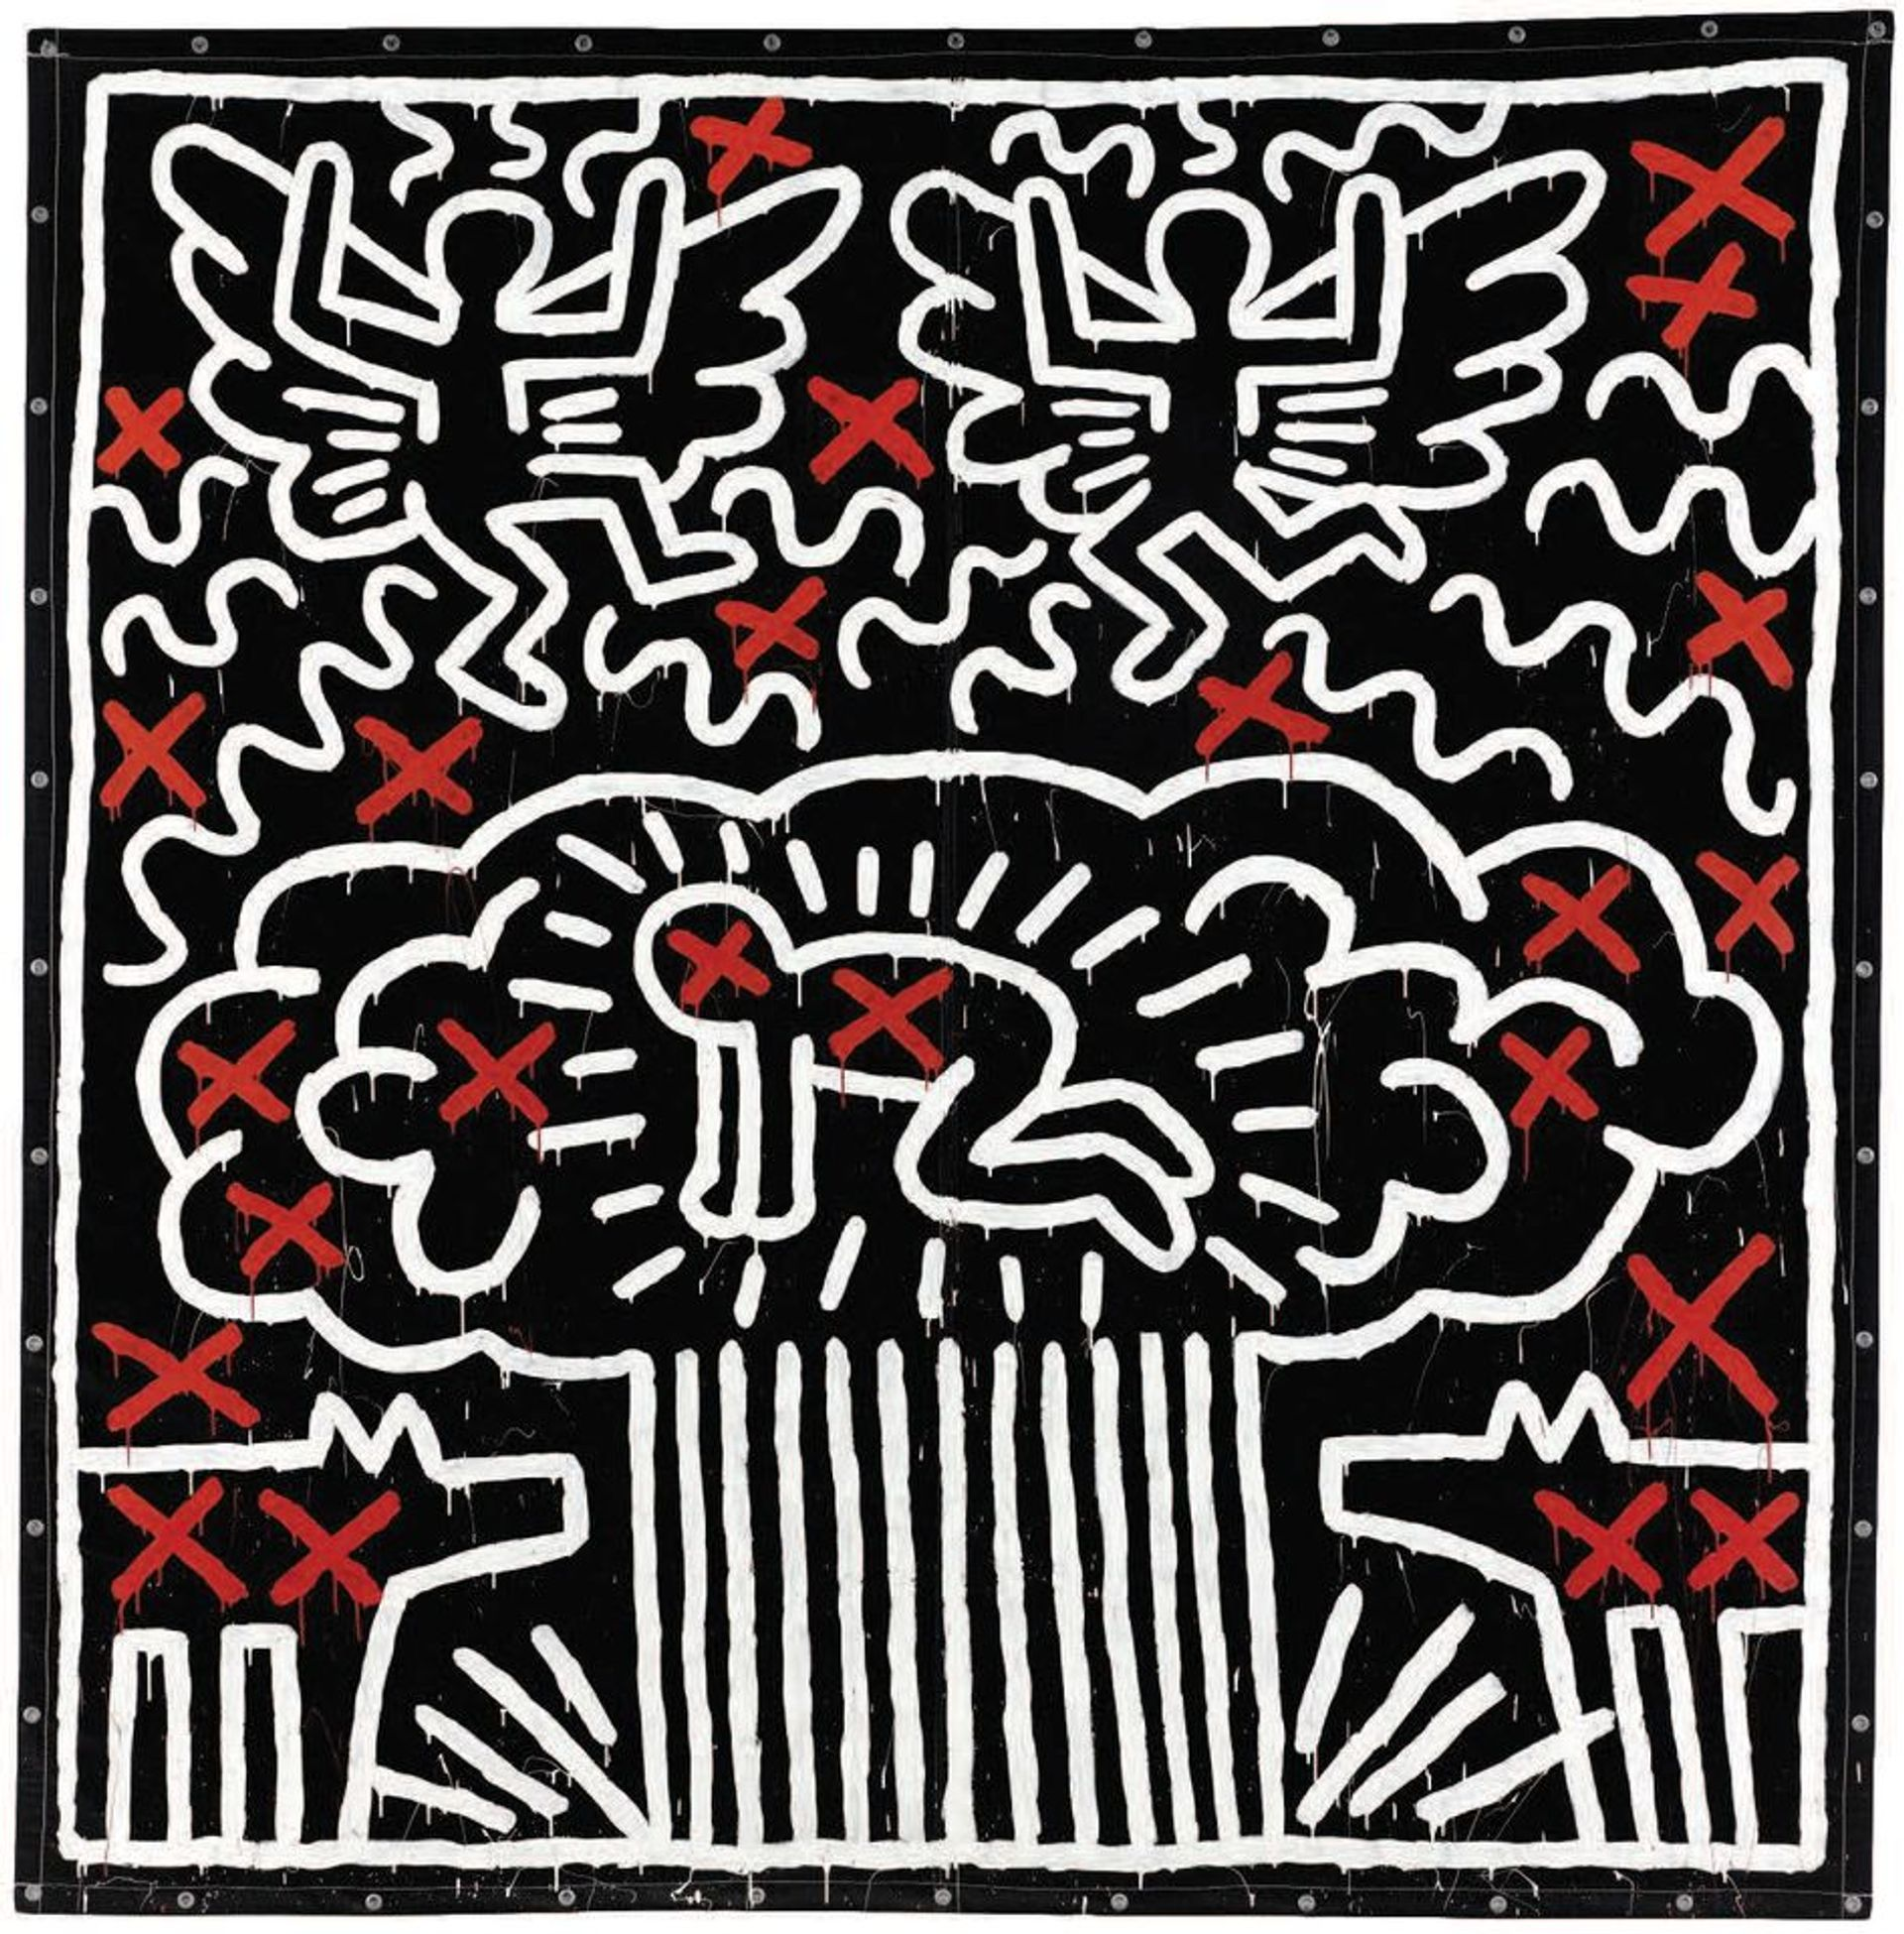 Keith Haring's Untitled (1982) was sold for $6.5m at Sotheby's in May 2017 but was never paid for © The Keith Haring Foundation via Sotheby's